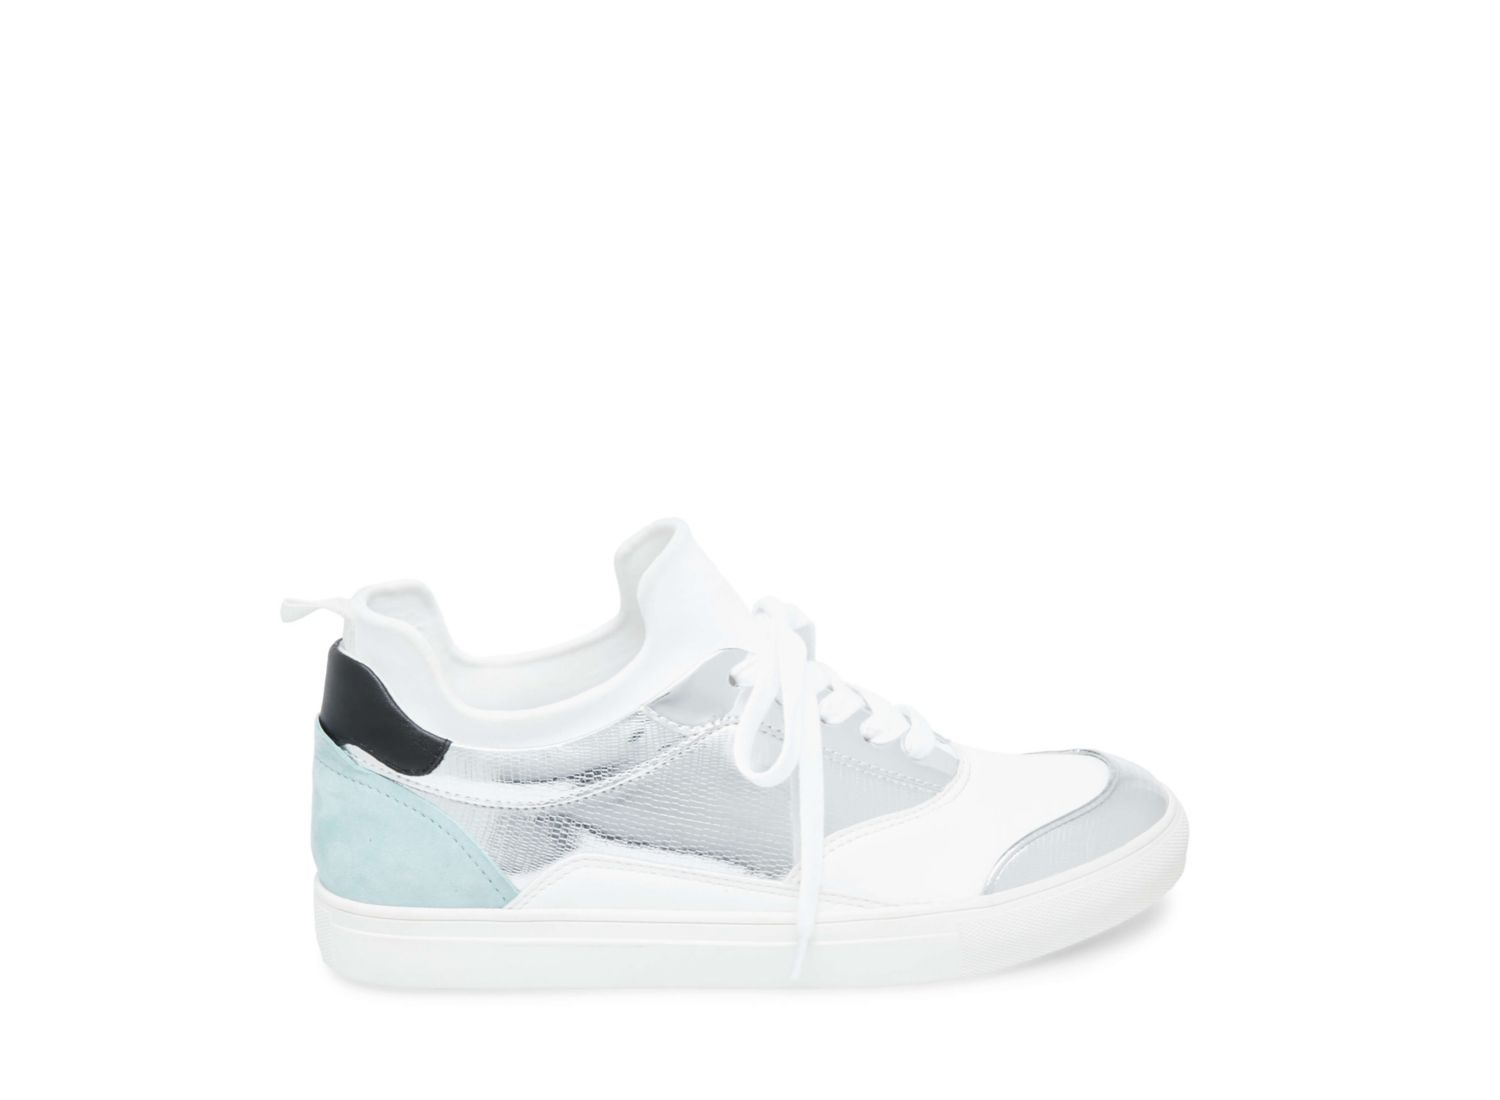 ARSENAL WHITE - Steve Madden